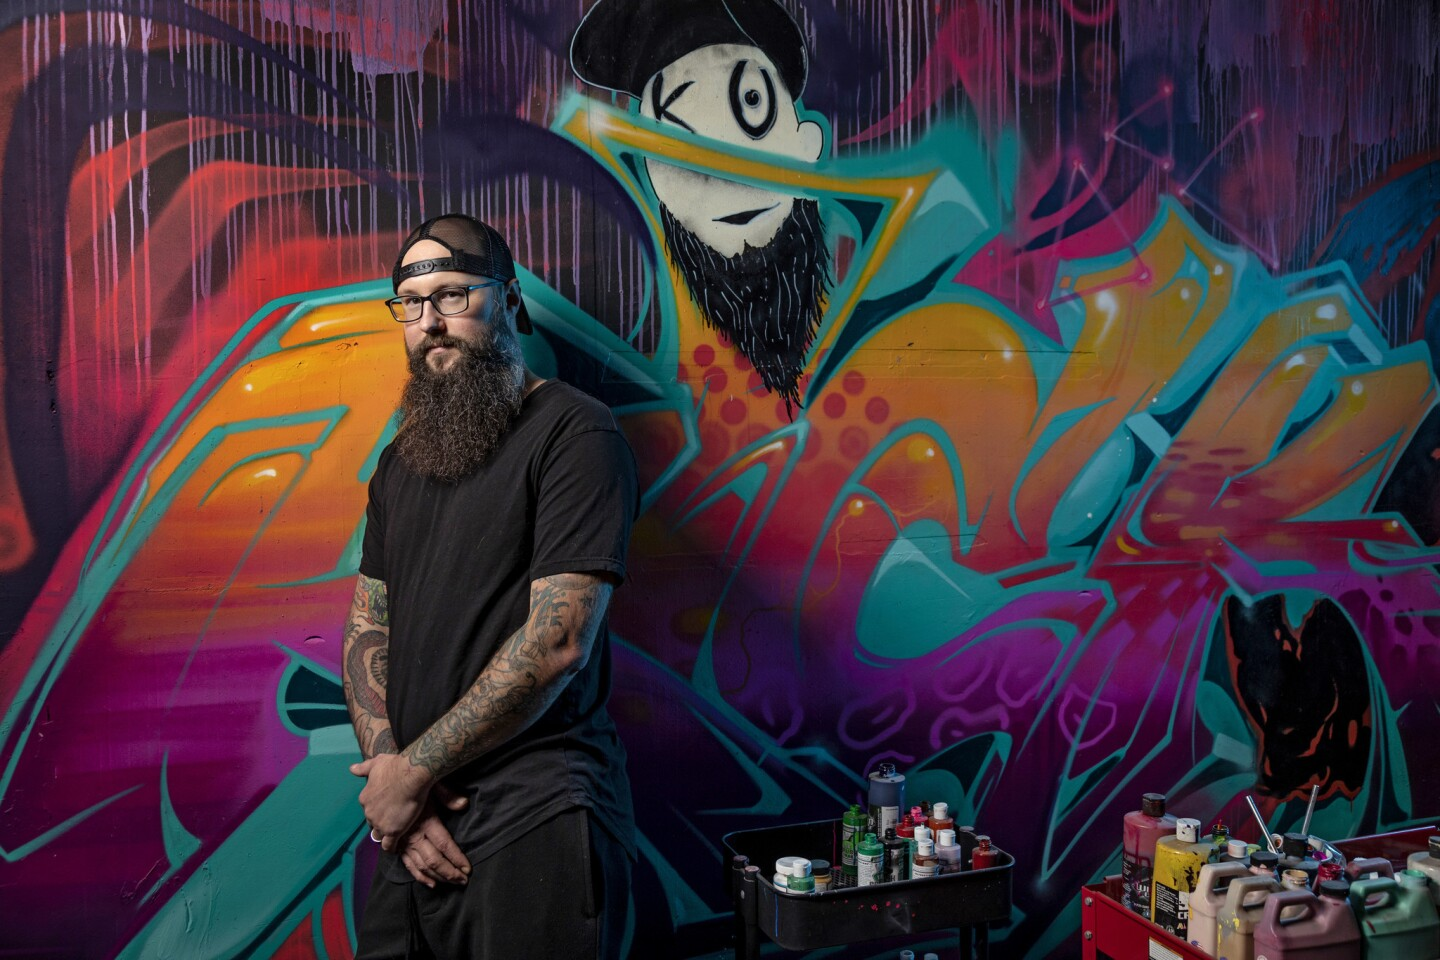 Troy Cole, a.k.a. Kickasso, in front of a mural by artist Jonathan Cirlin, a.k.a. Espy Dpt/Znc, at his workshop, Kickasso Kustoms, in downtown Los Angeles.